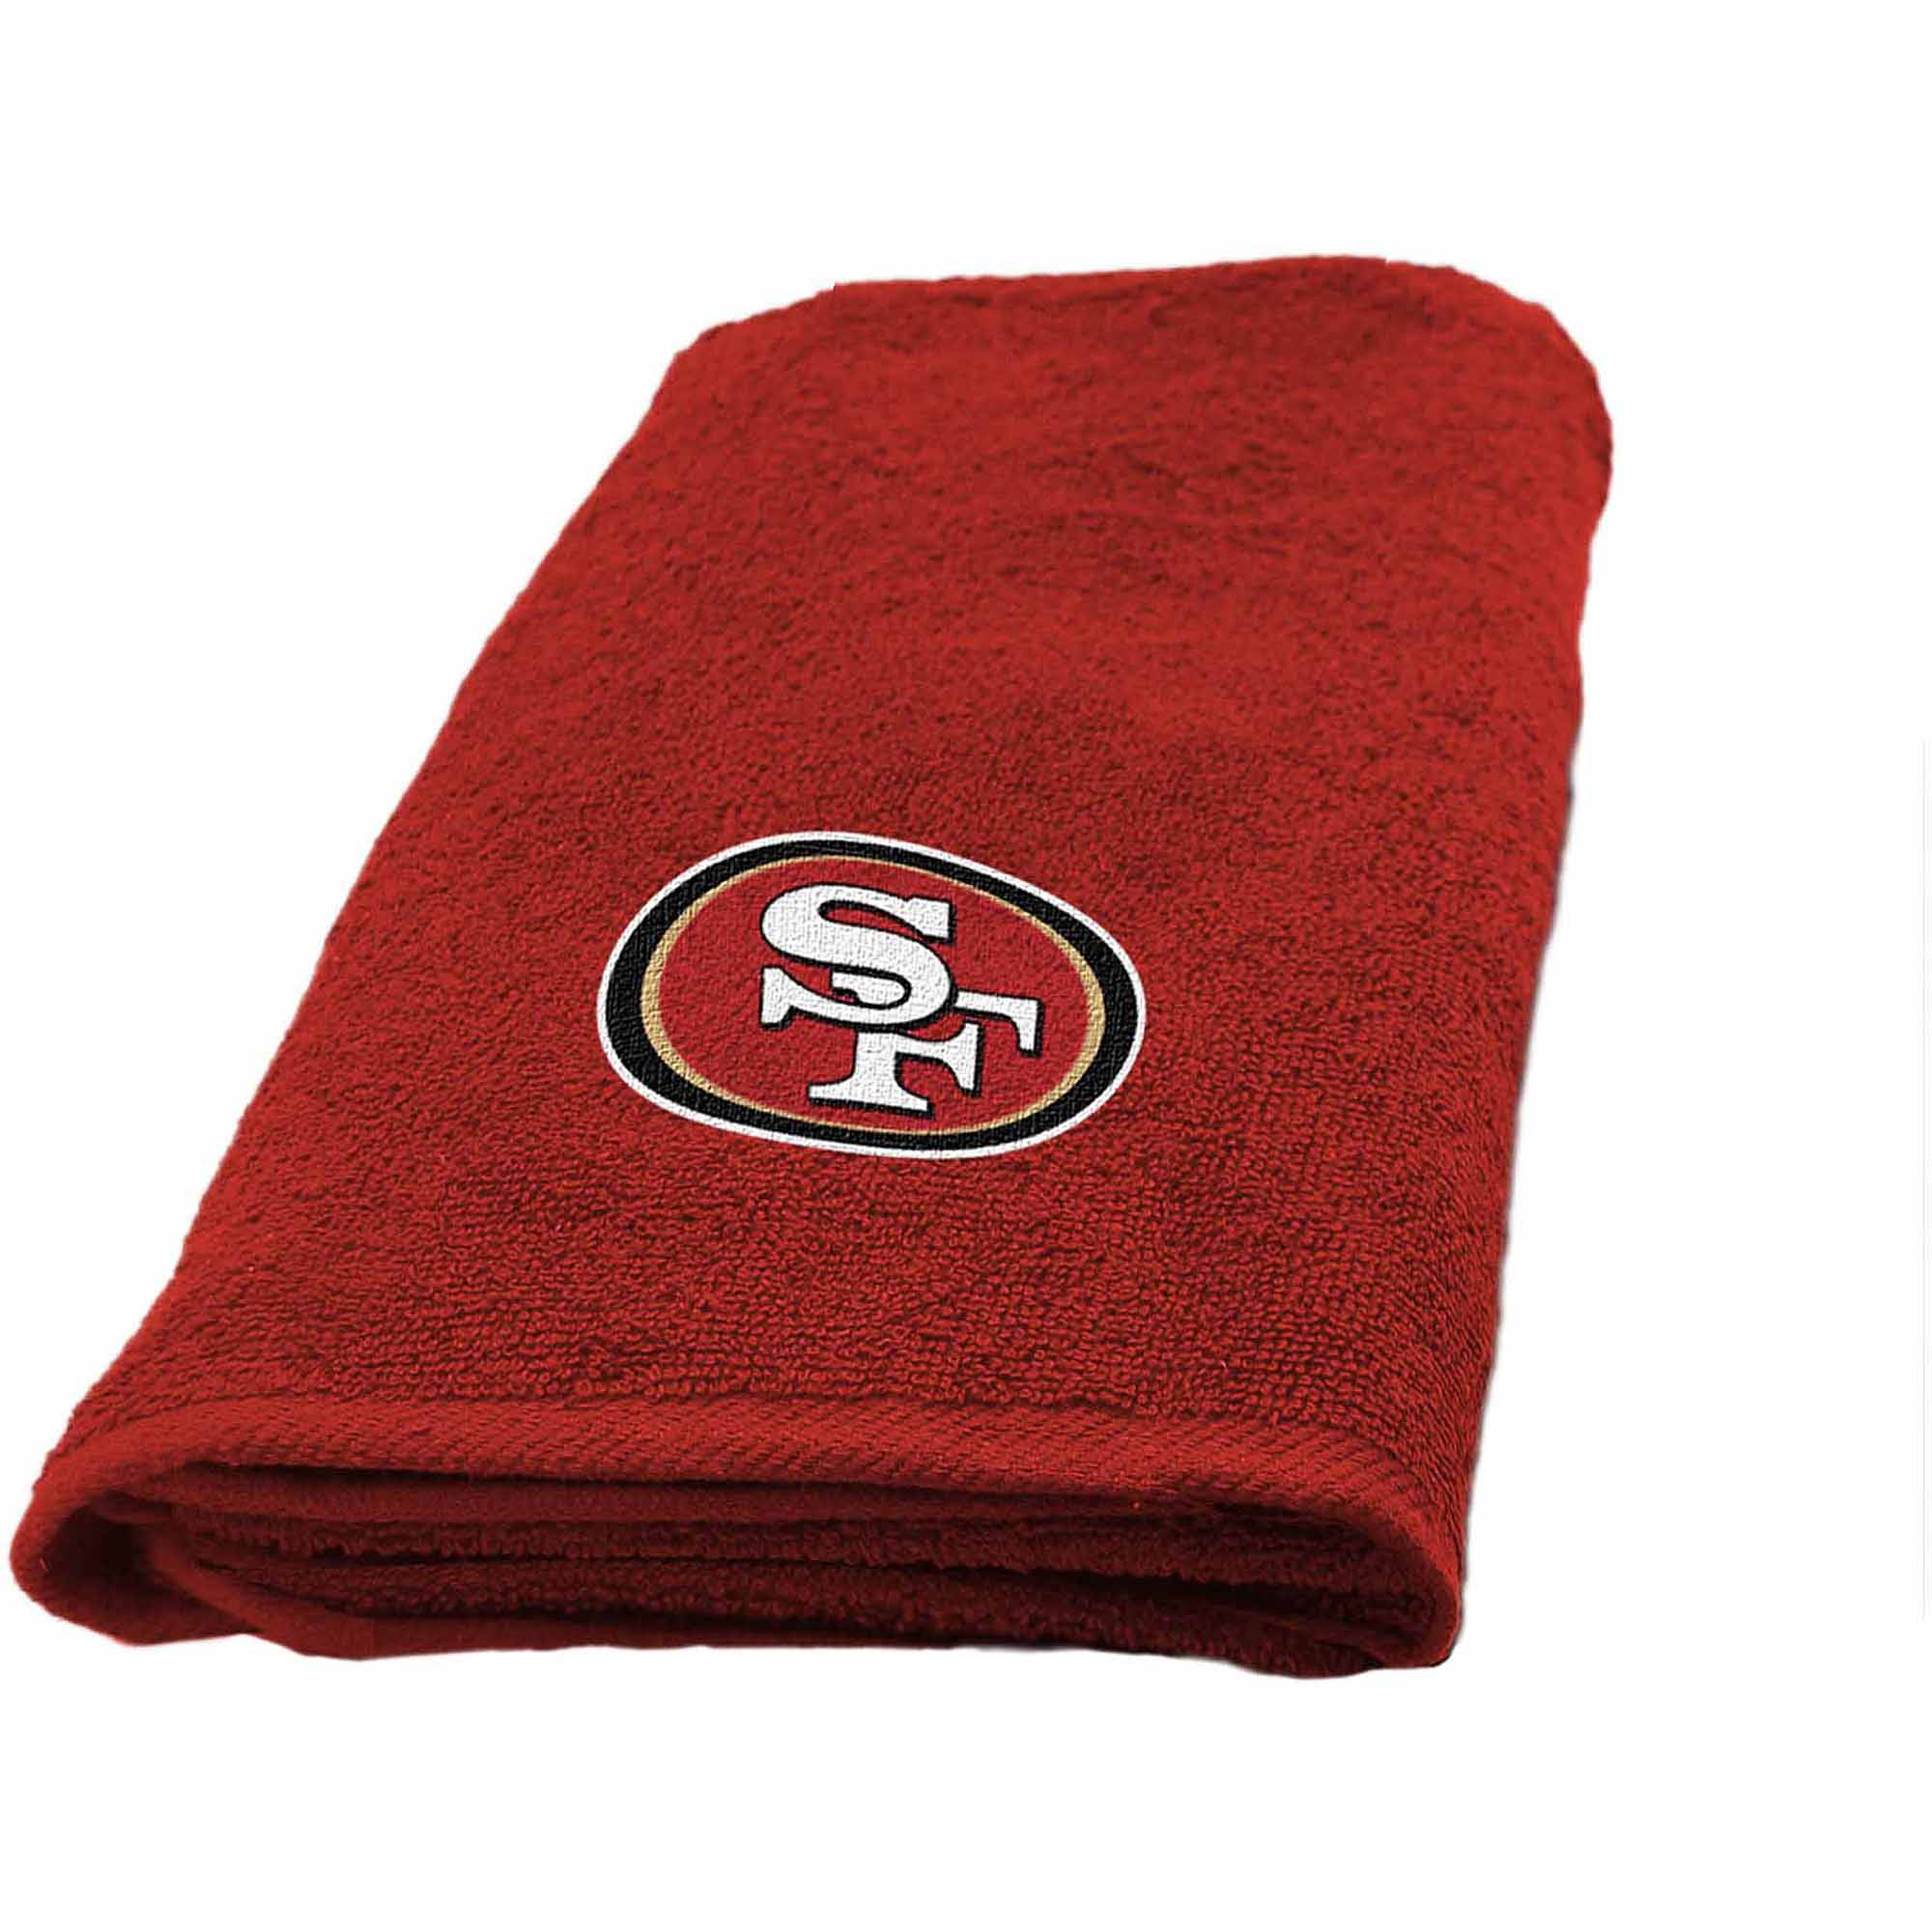 NFL San Francisco 49ers Hand Towel